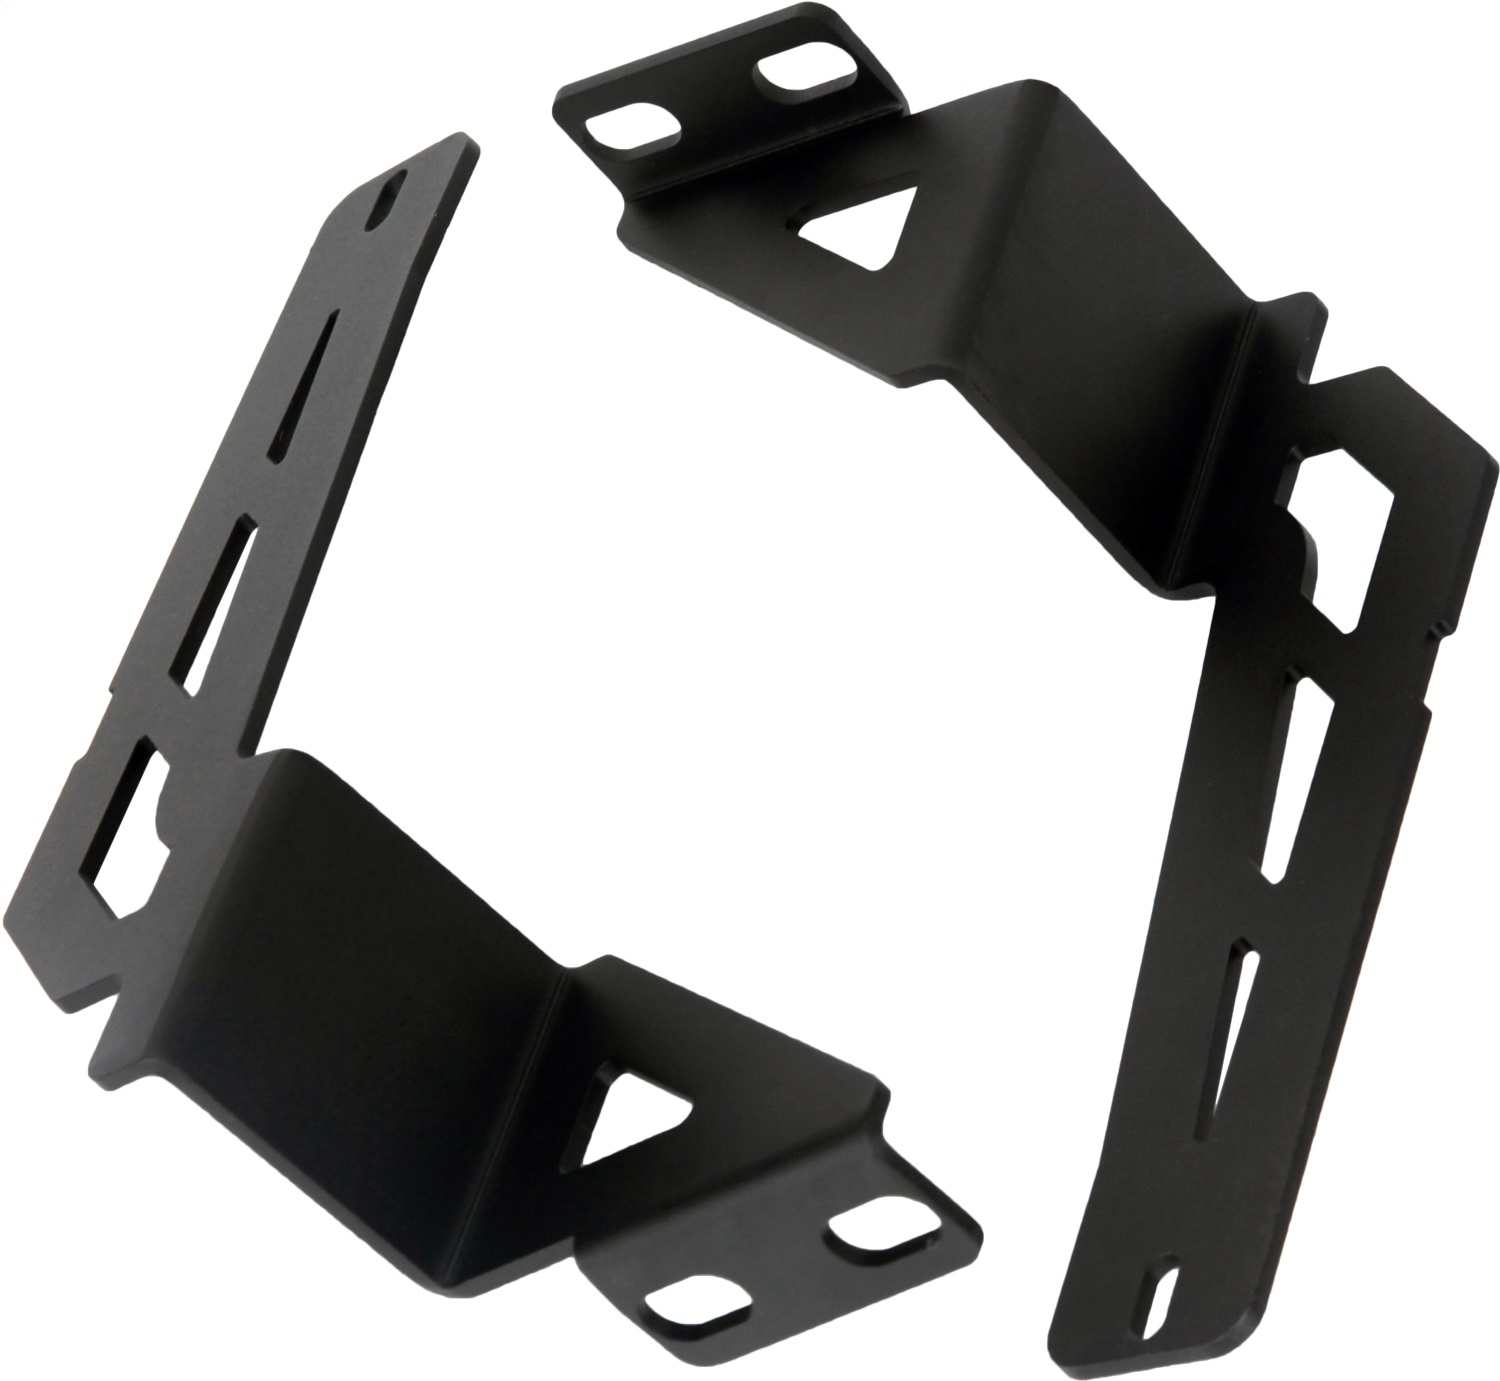 Bumper Mount Kit, 30 in., SR-Series, Black, Incl. Mounts/Hardware